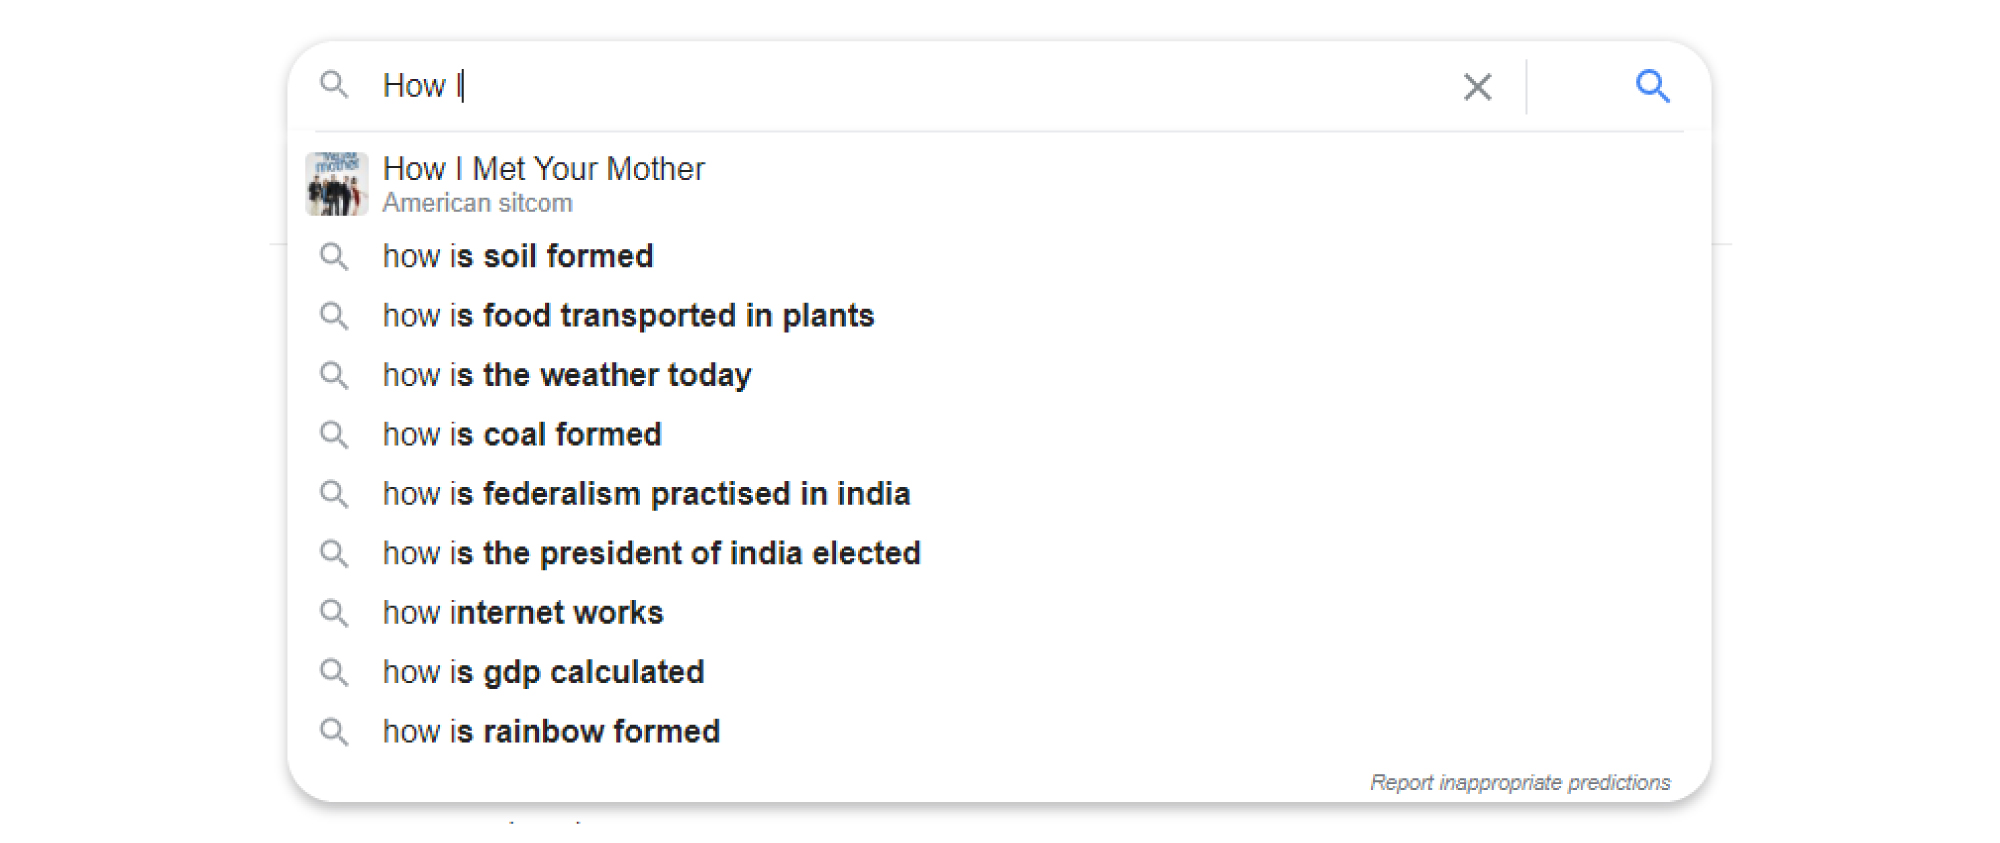 Autocomplete and Suggestion Management